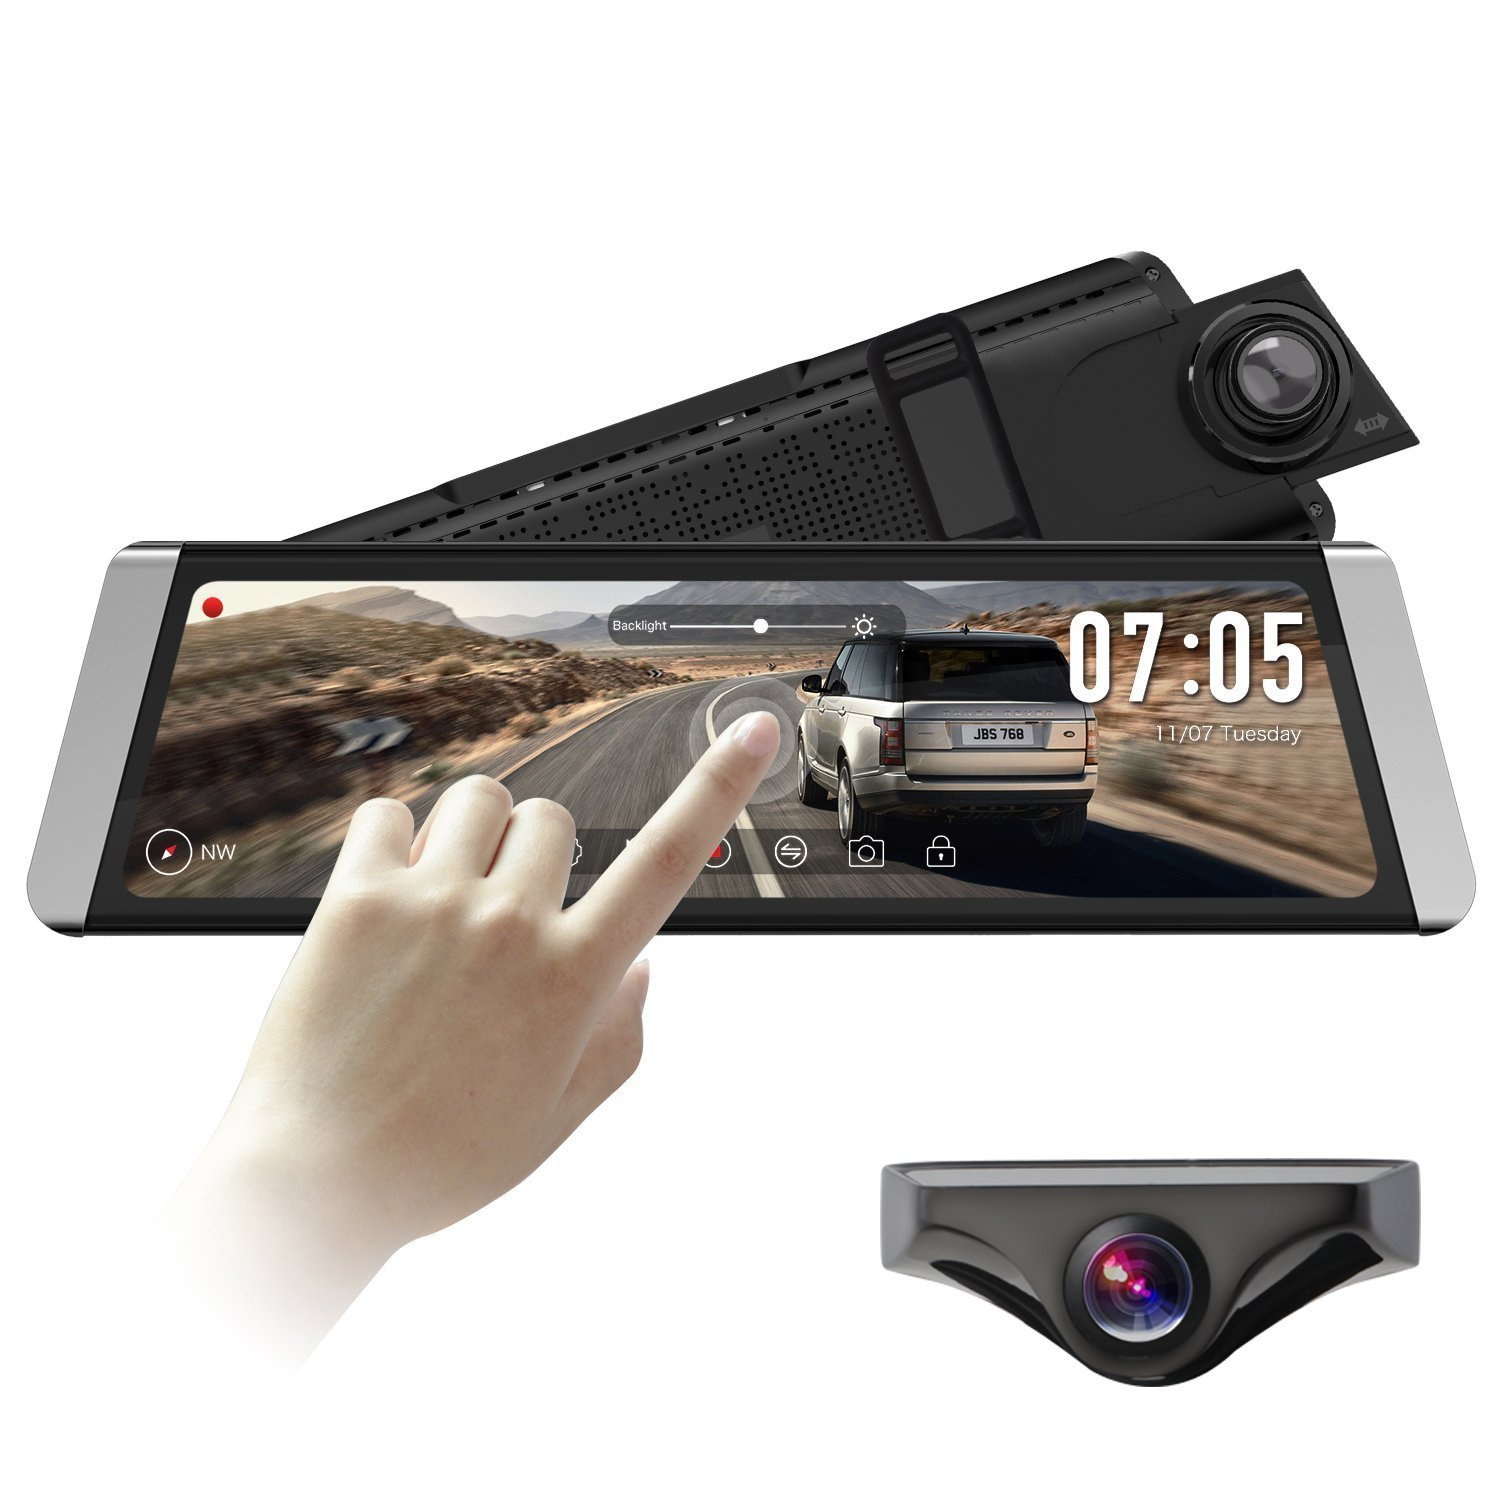 AUTO-VOX X1 9.88''Full Touch Screen Stream Media Dual Lens Mirror Dash Cam AHD Reversing Backup Camera kit,1296P FHD Front Camera and 720P Rear View Recorder Dash Cam with Auto Brightness,WDR,LDWS,GPS